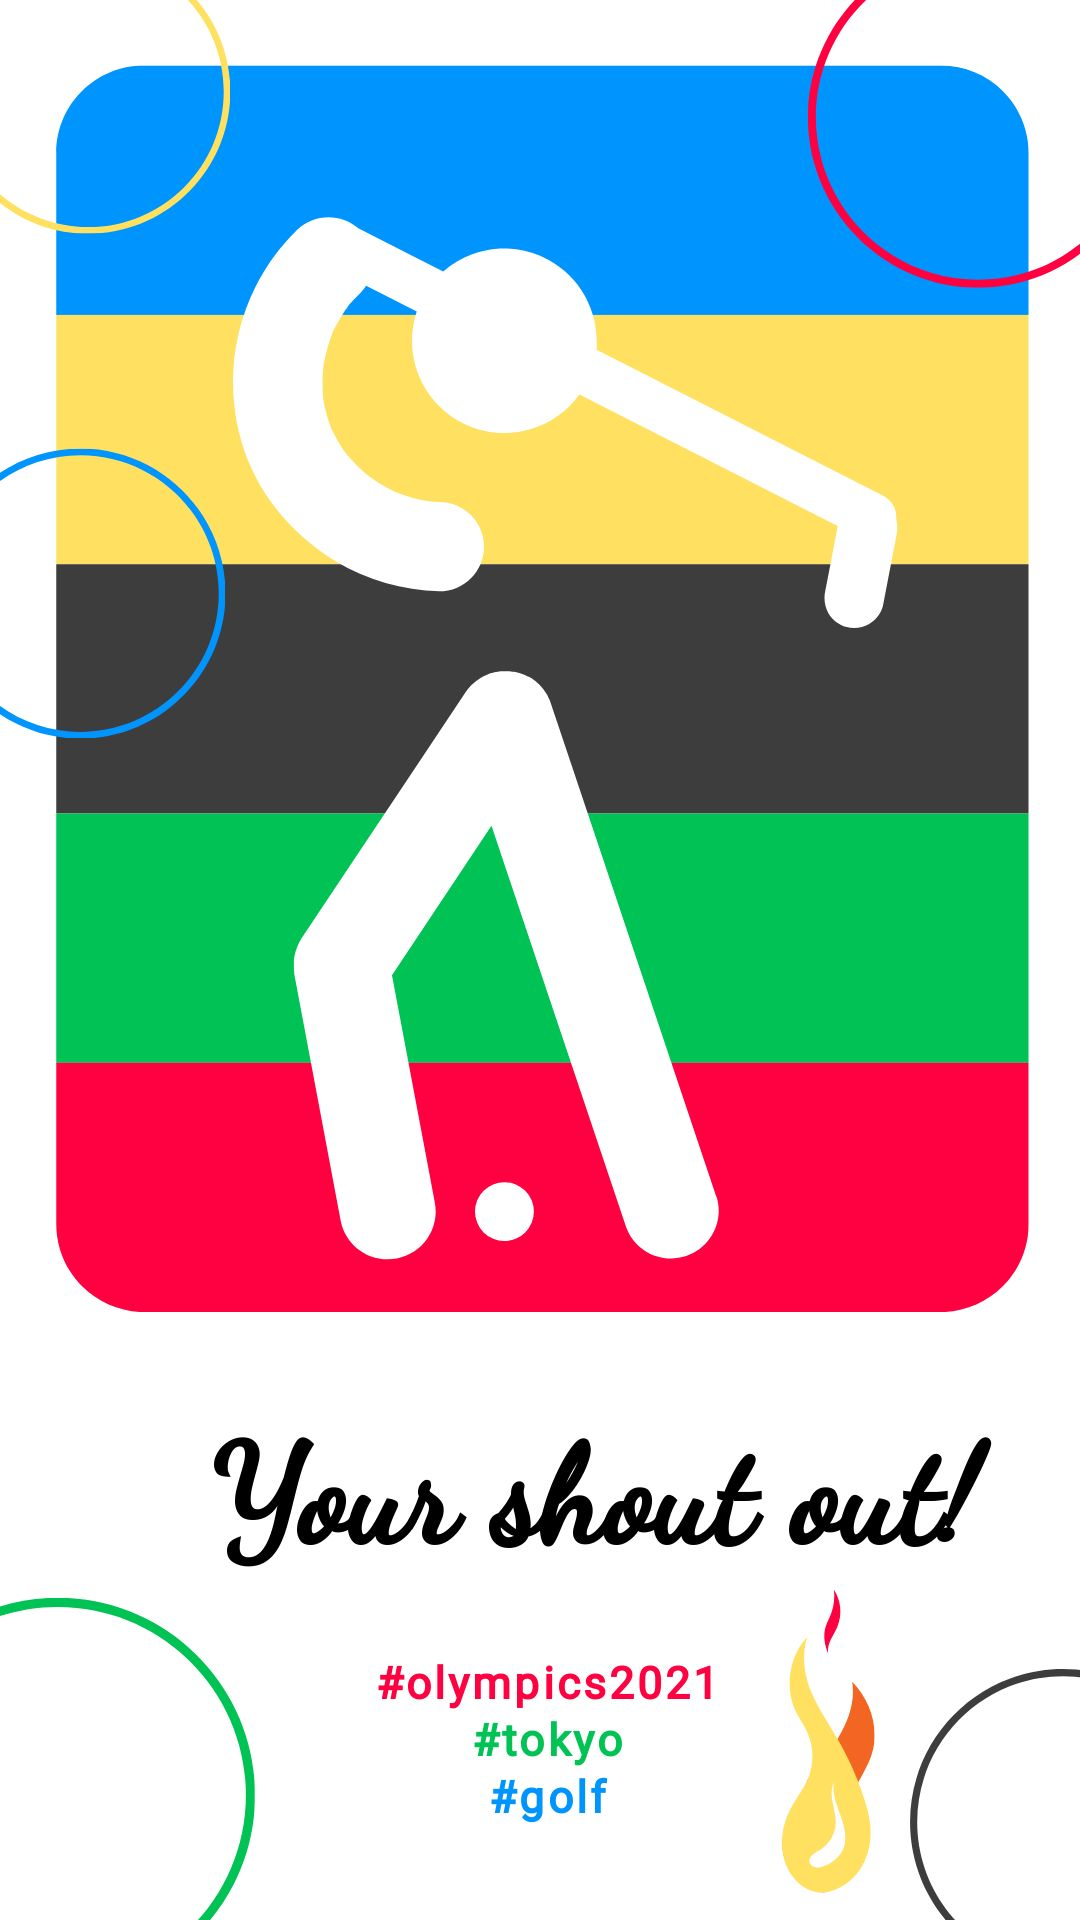 Golf Pictogram Olympic Instagram Story Post Template